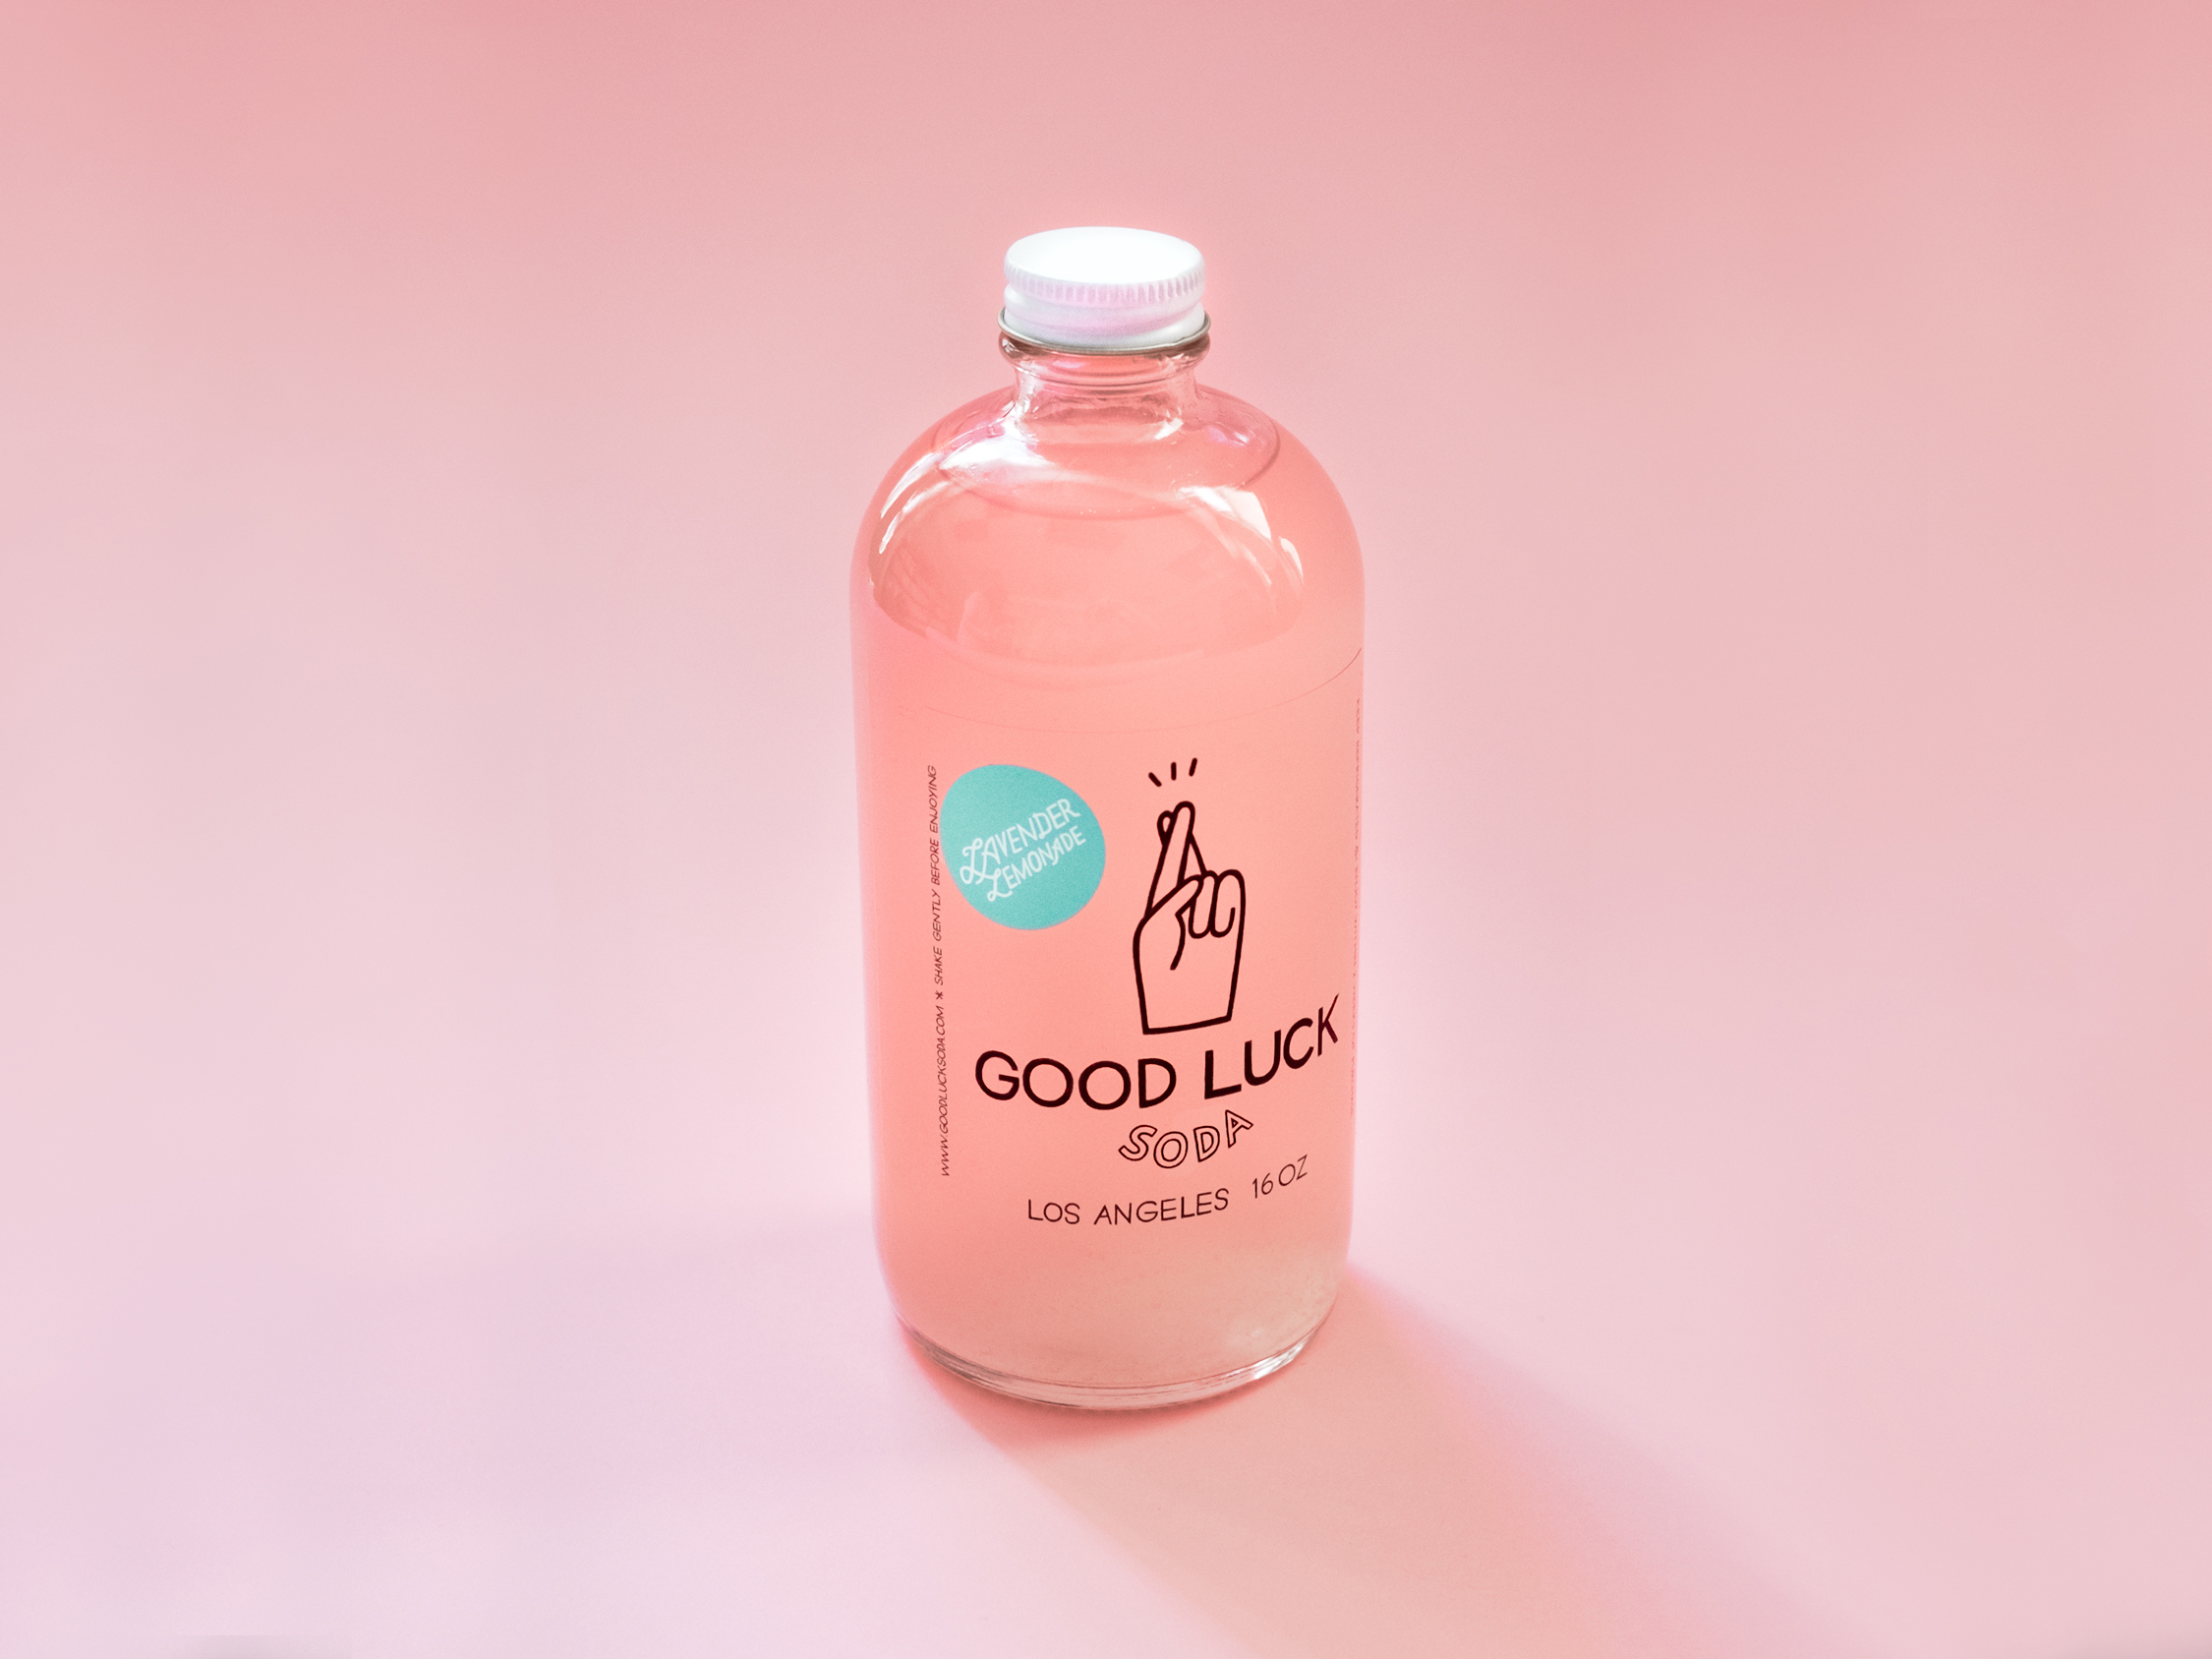 Co-Founder and art director for small local Los Angeles soda company,  Good Luck Soda . Responsible for all brand identity, logo design, packaging design, and creative content involving graphic and illustrations.